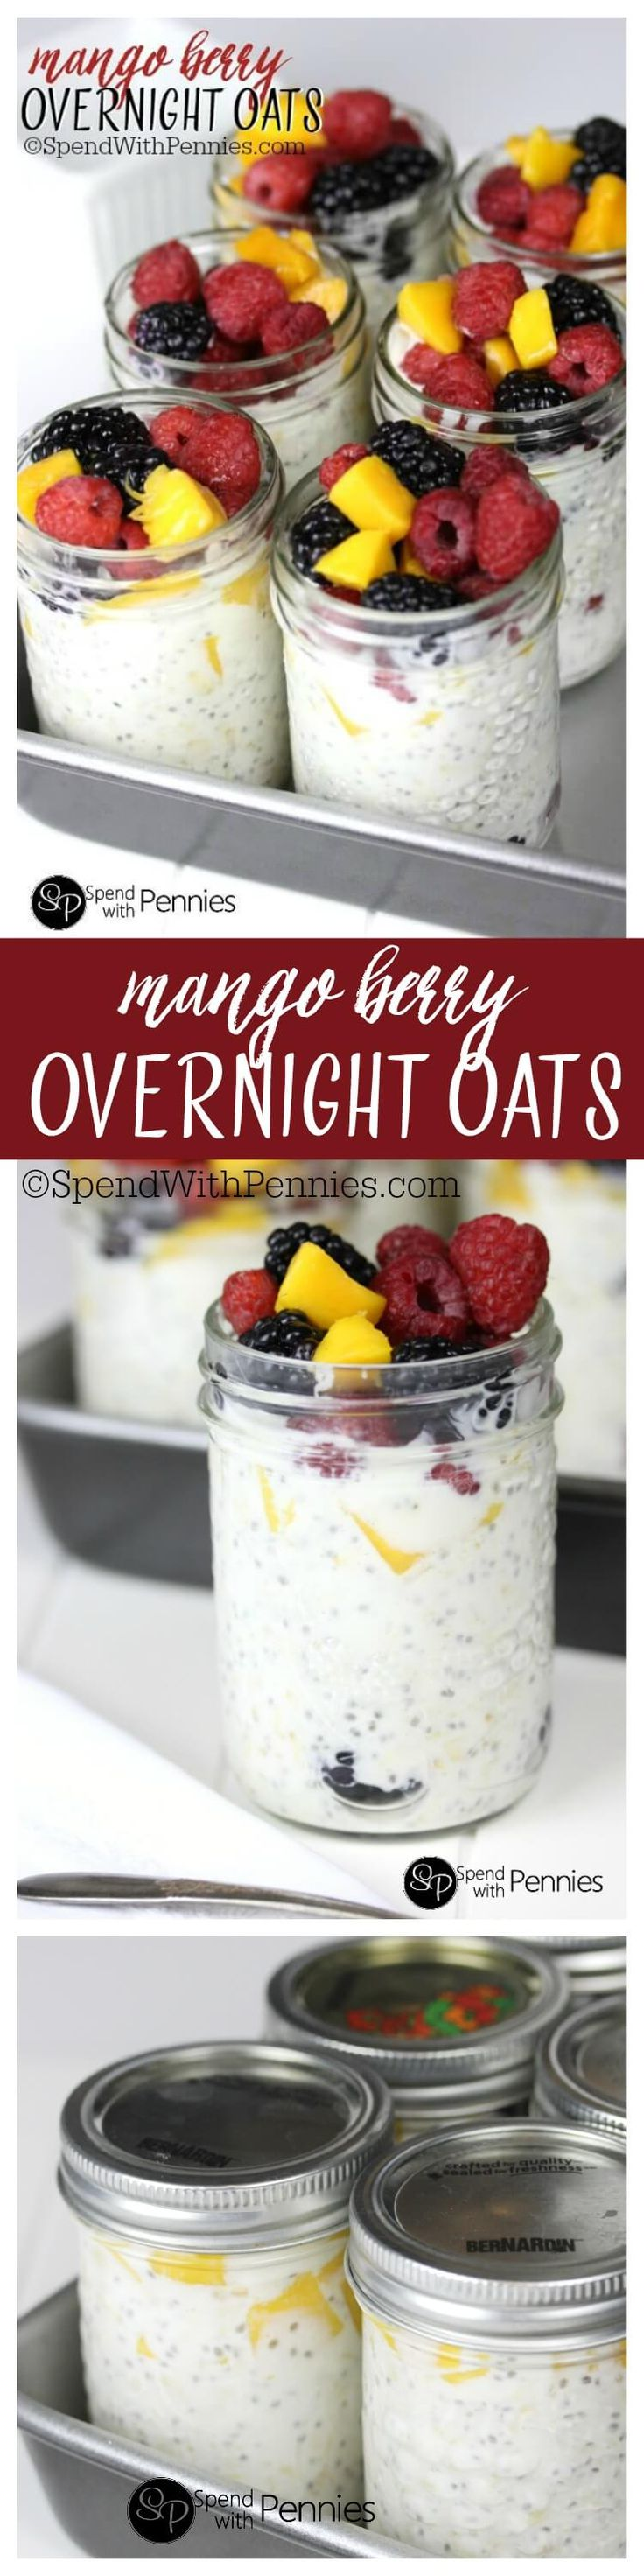 Overnight Oats can be made with any fruit and are and easy, healthy make ahead breakfast!  Perfect to grab & go!